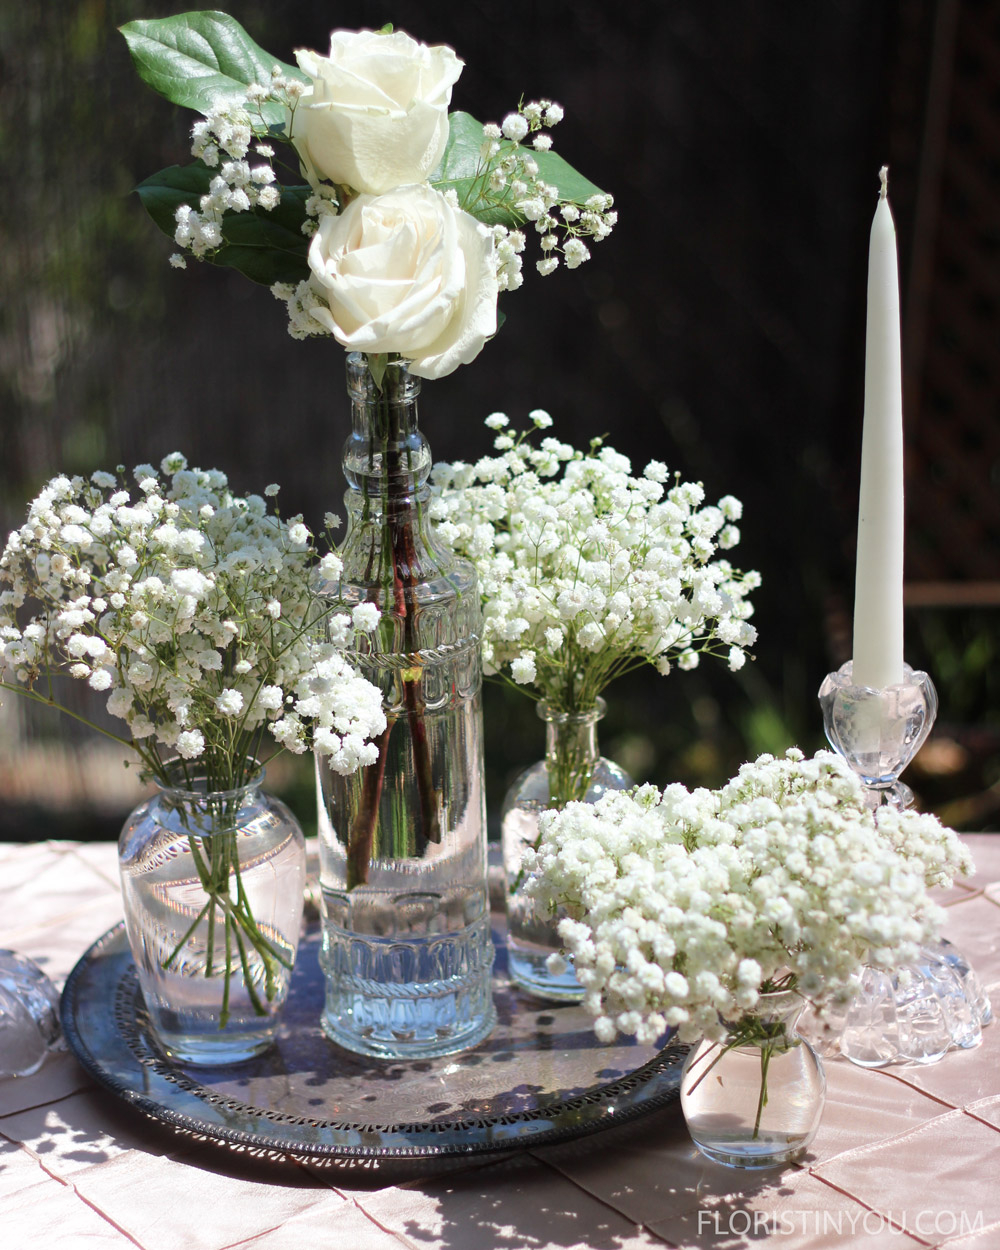 5 Beautiful Ways To Use Narrow Neck Vases Floristinyou with proportions 1000 X 1250